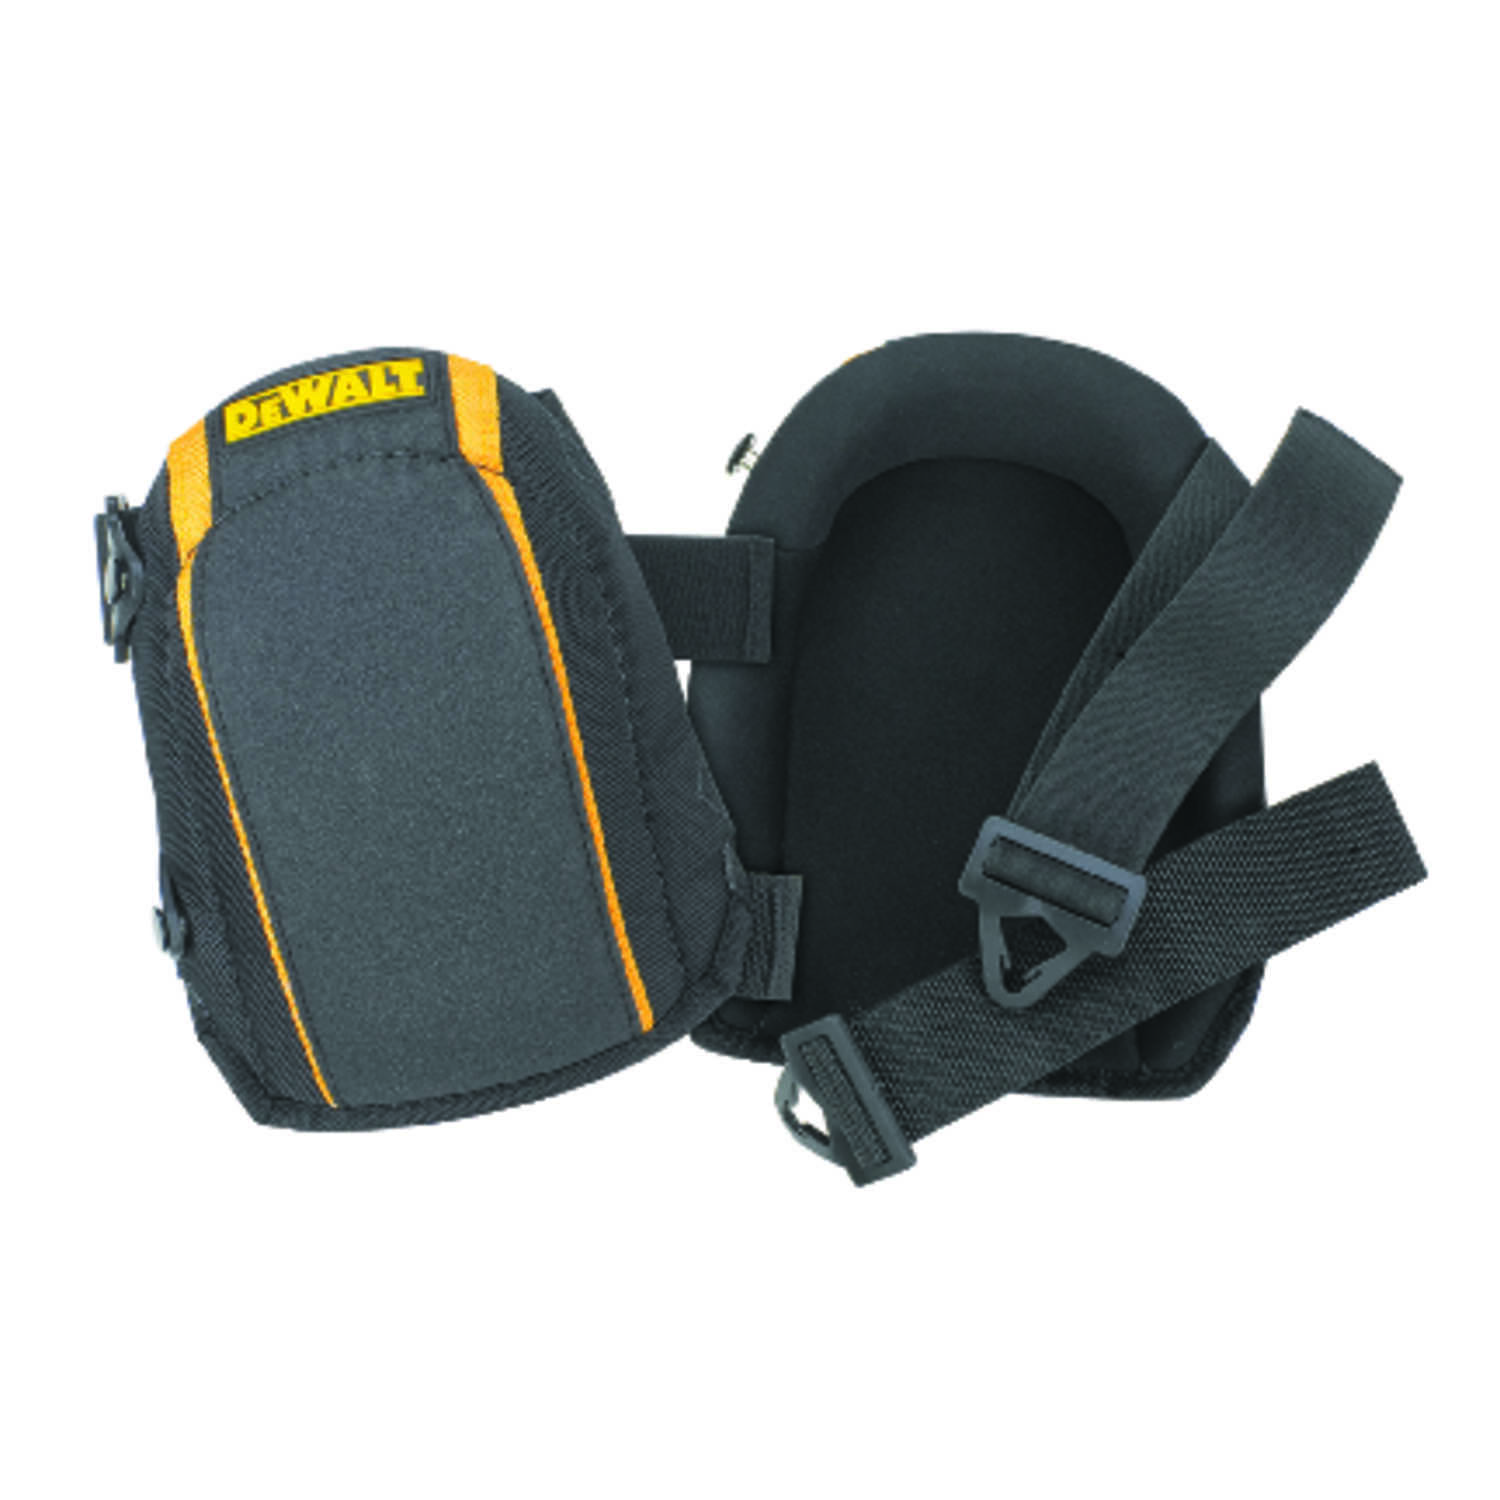 DEWALT By CLC  7 in. L x 4.25 in. W Foam  Knee Pads  Black  Non-Marring